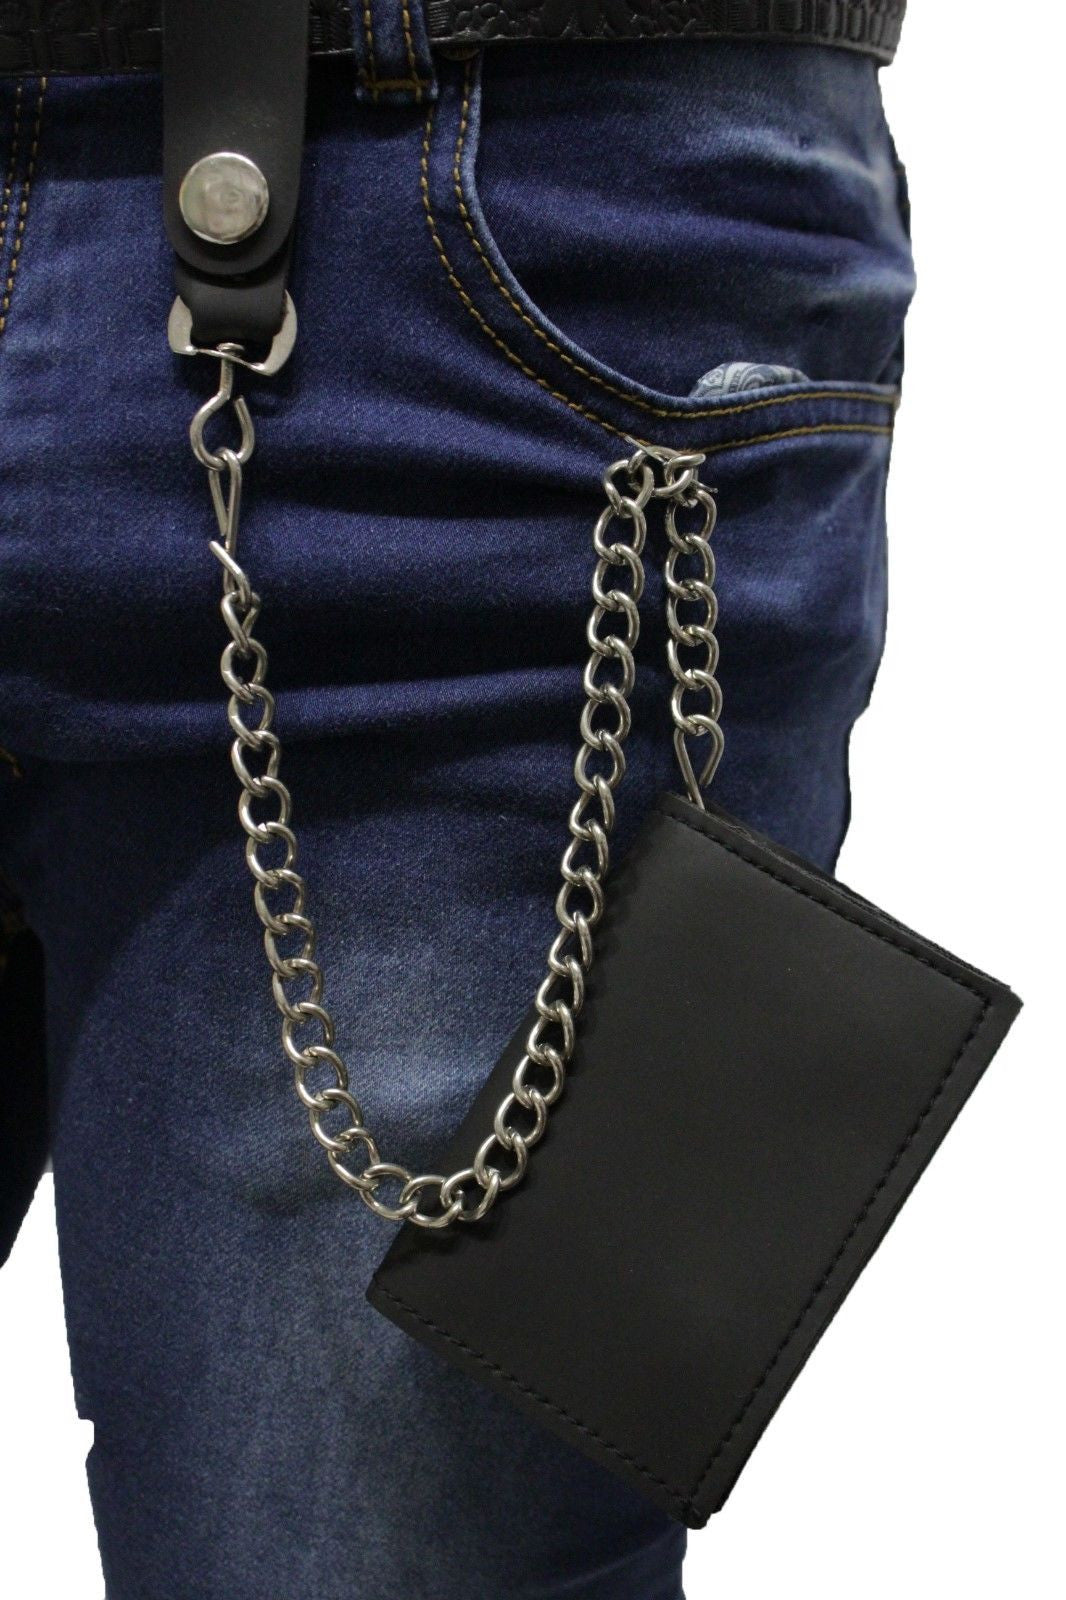 online retailer promo code the best attitude Silver Metal Wallet Chains KeyChain Jeans Black Trifold Faux Leather Wallet  Men Fashion Accessories